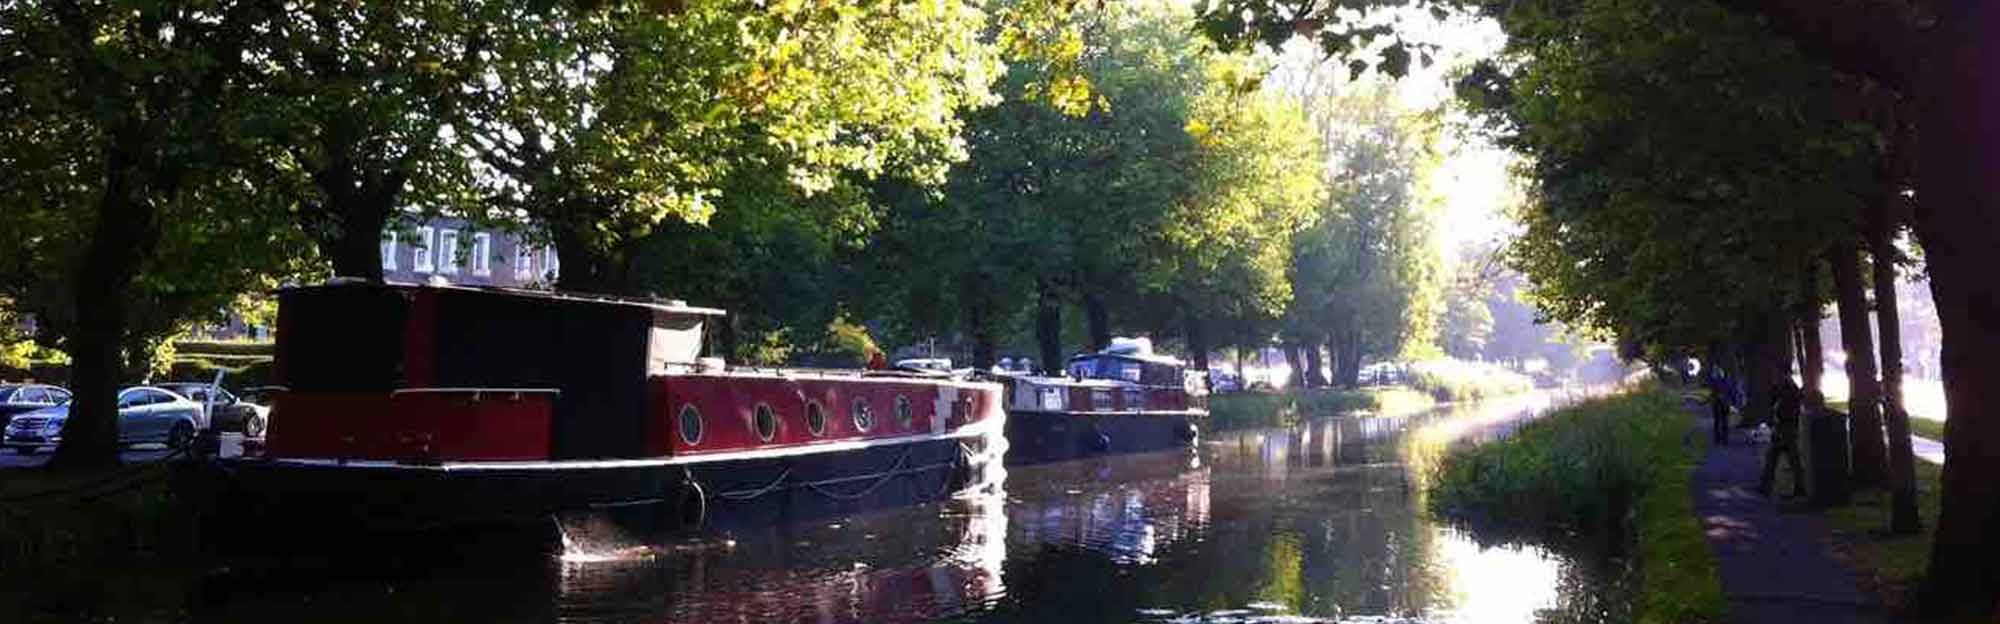 an image of the-liffey-canal-dublin-city on a sunny day